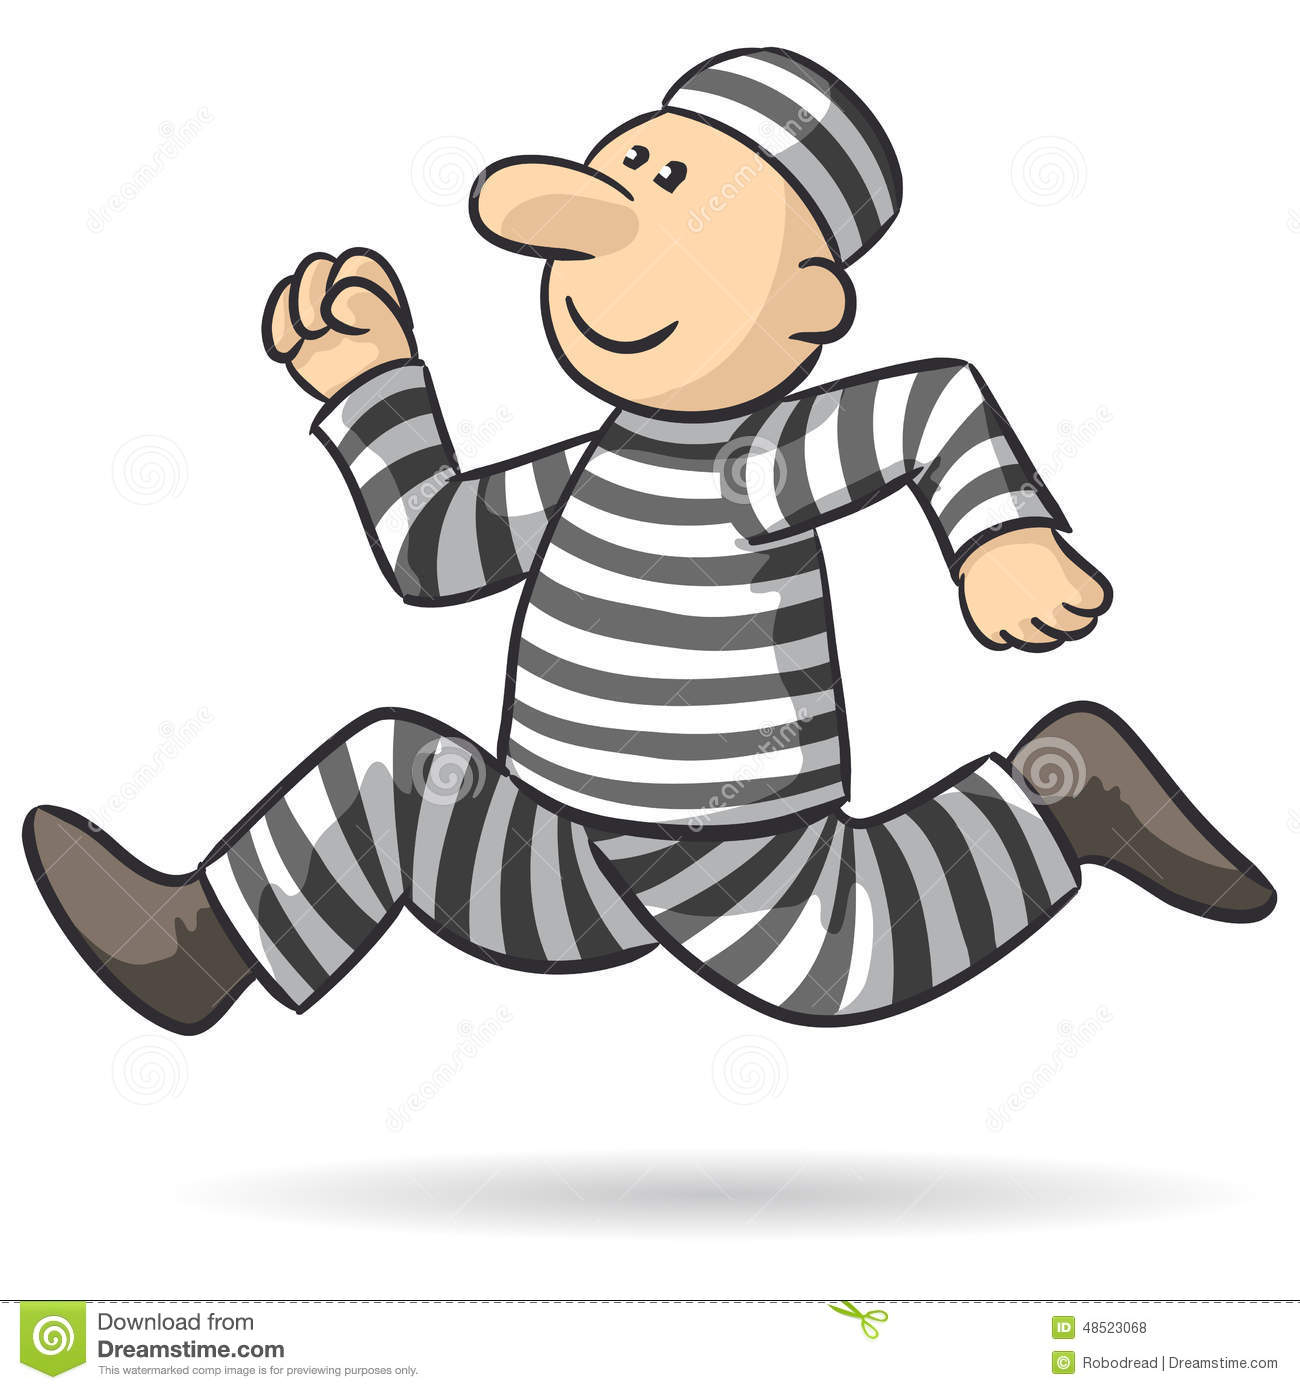 Illustration of an escaped convict who runs fast.